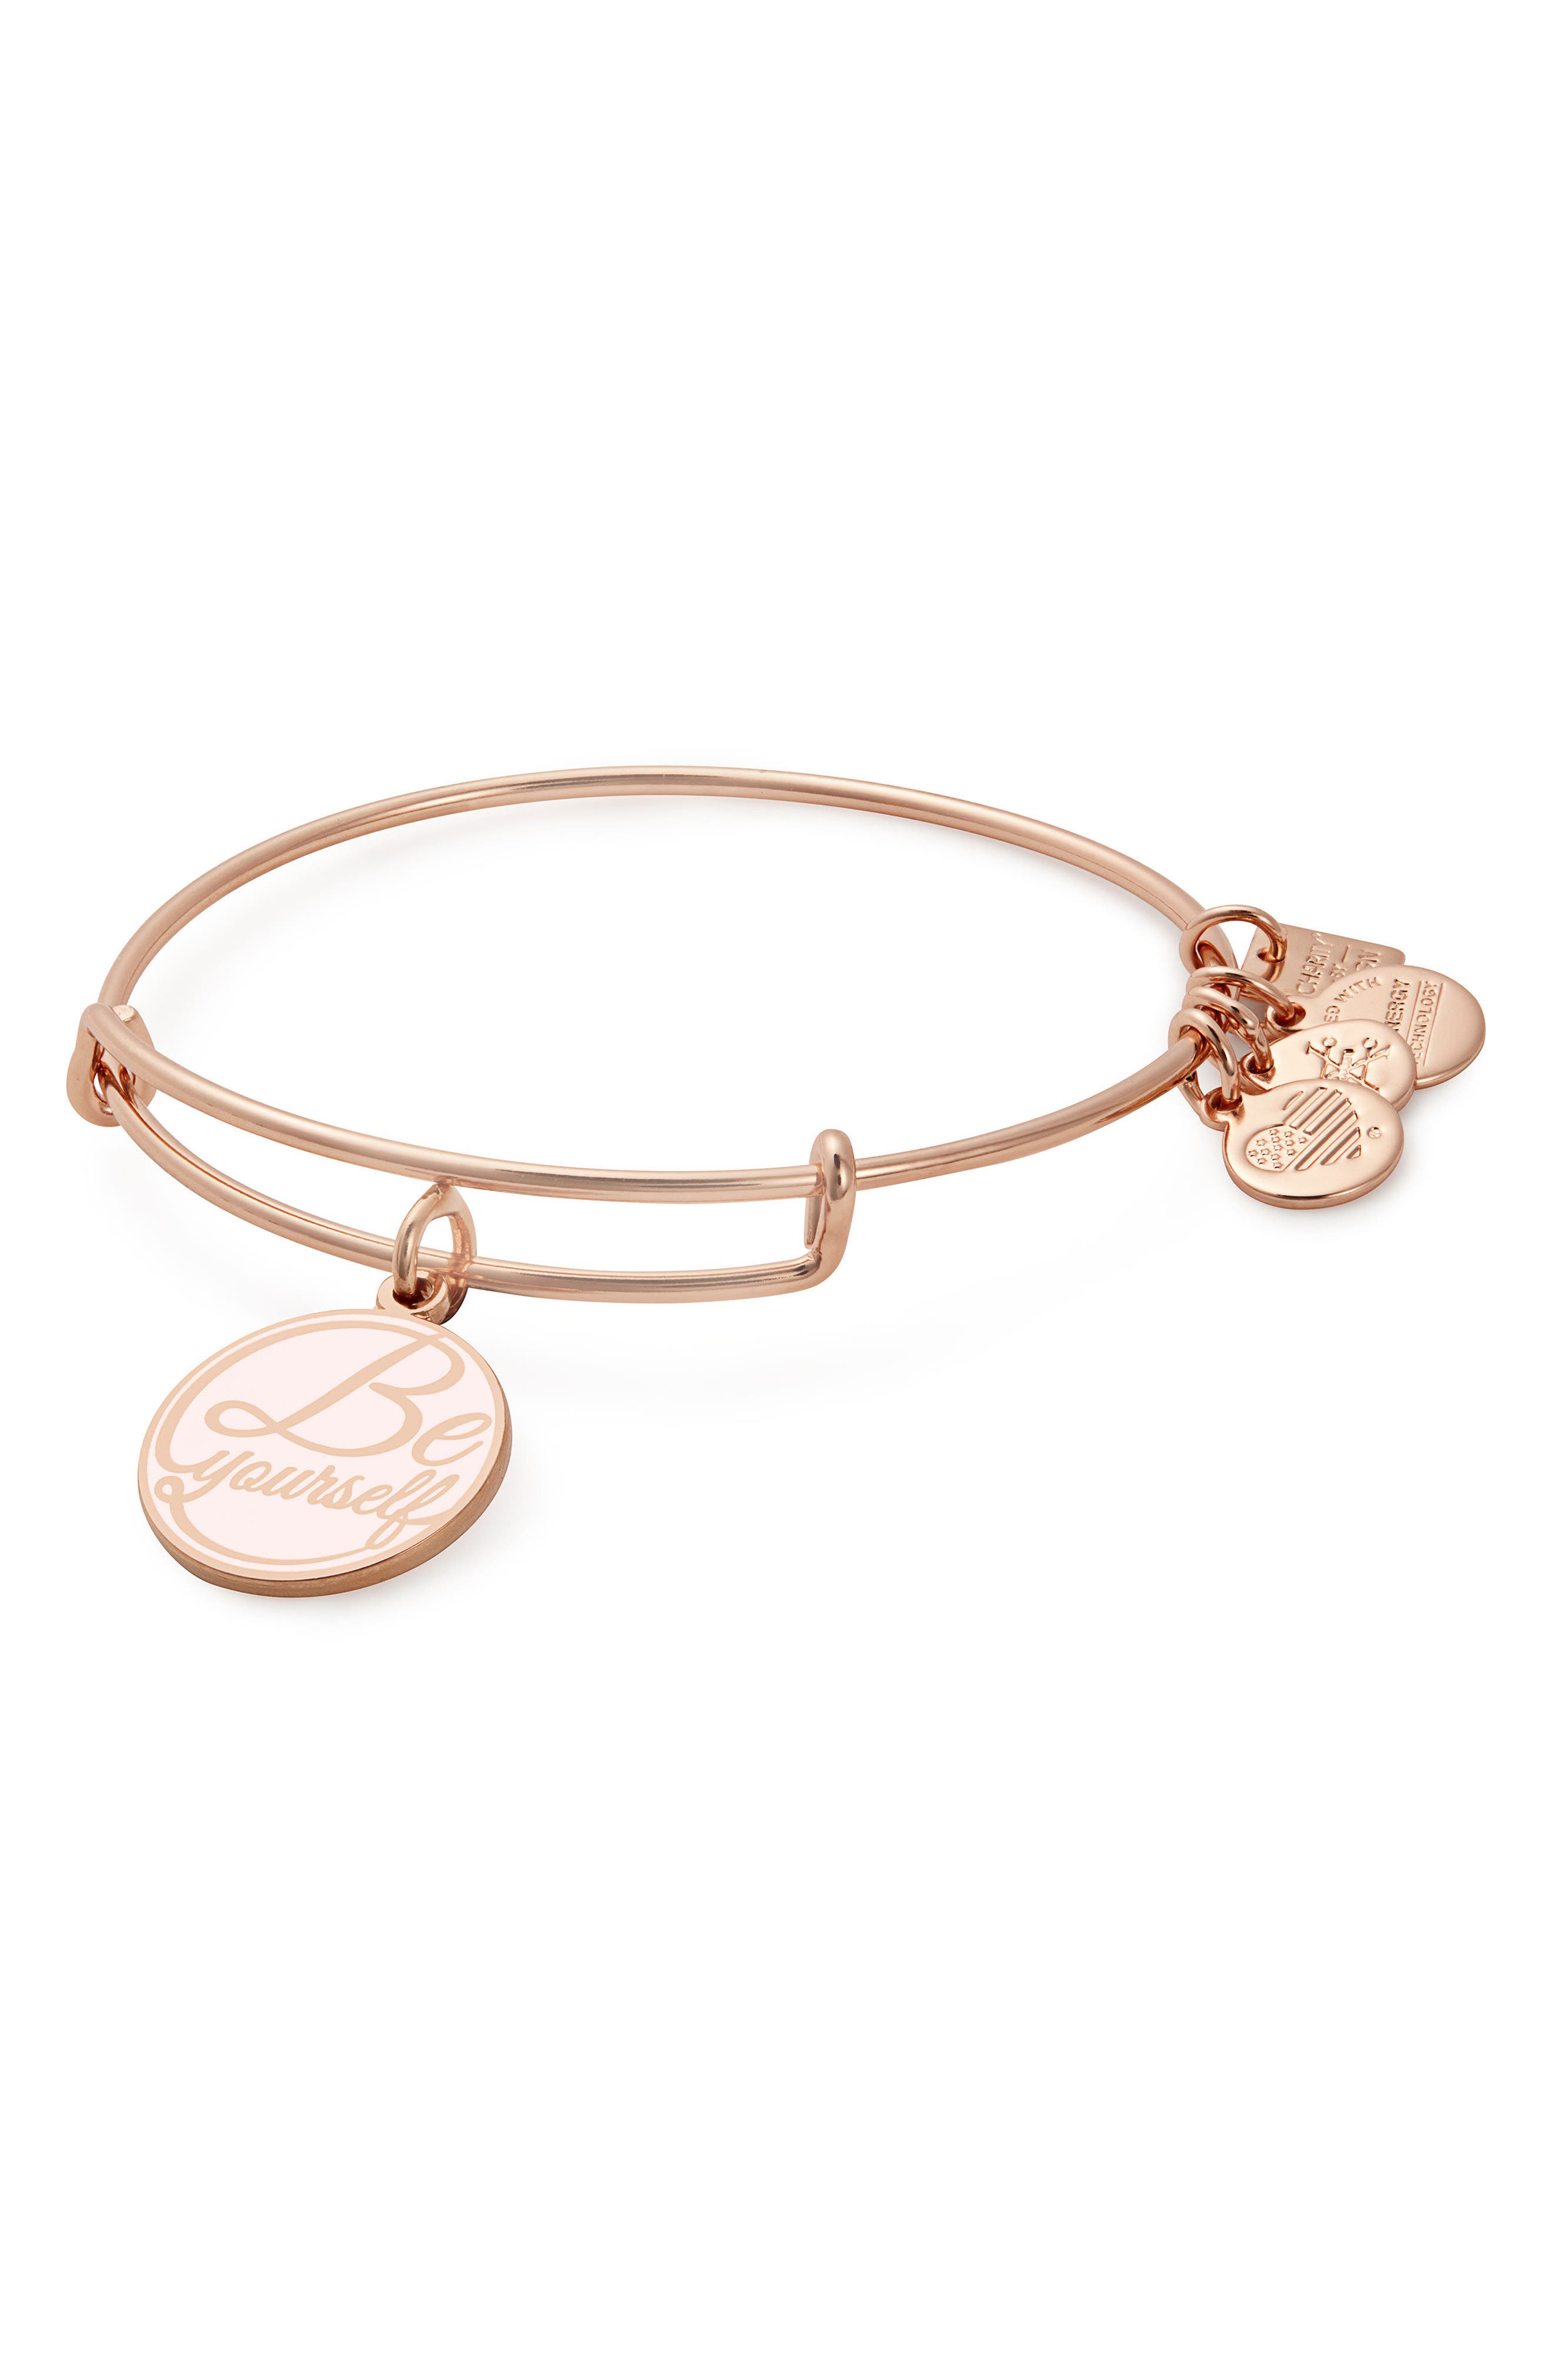 Kindred Cord Be Yourself Bangle,                             Main thumbnail 1, color,                             ROSE GOLD